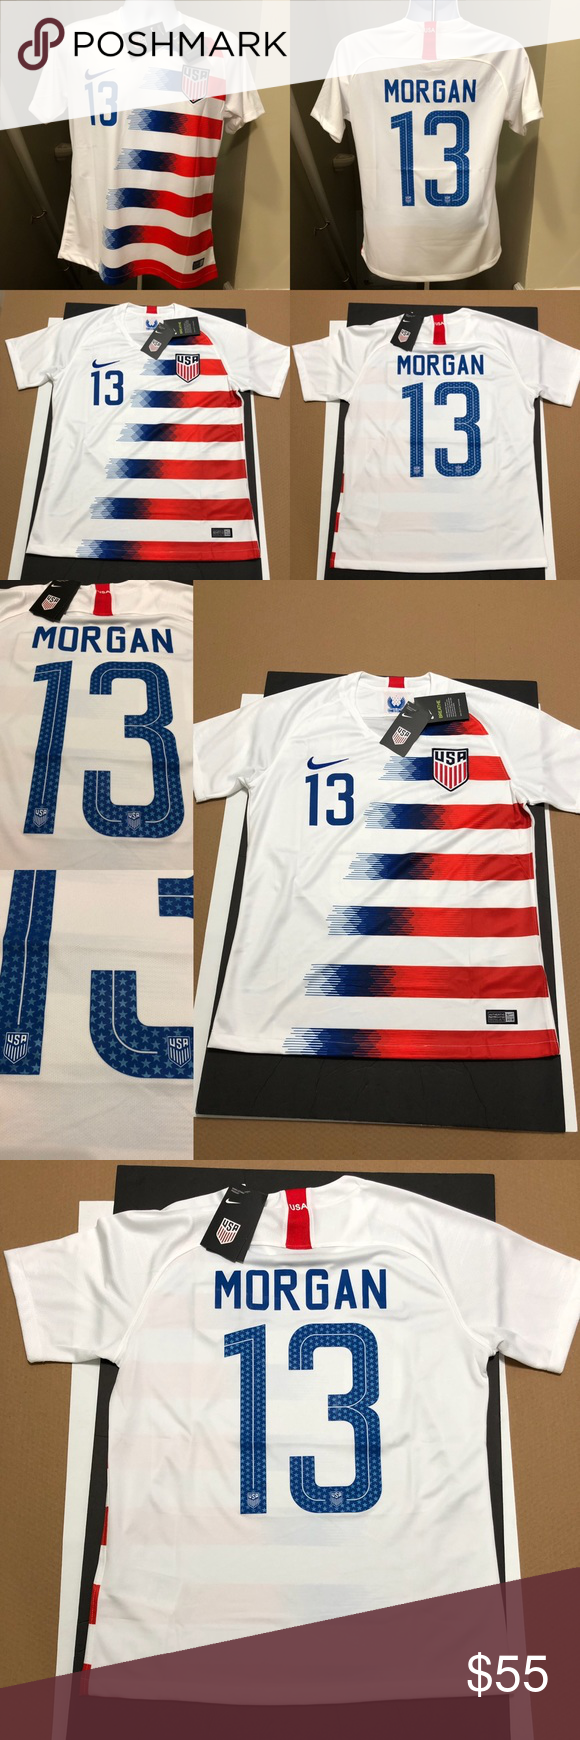 new product 3179e 26d2d ⚽️ 🇺🇸 Nike Jersey Alex Morgan #13 Soccer USWNT 2019 ...